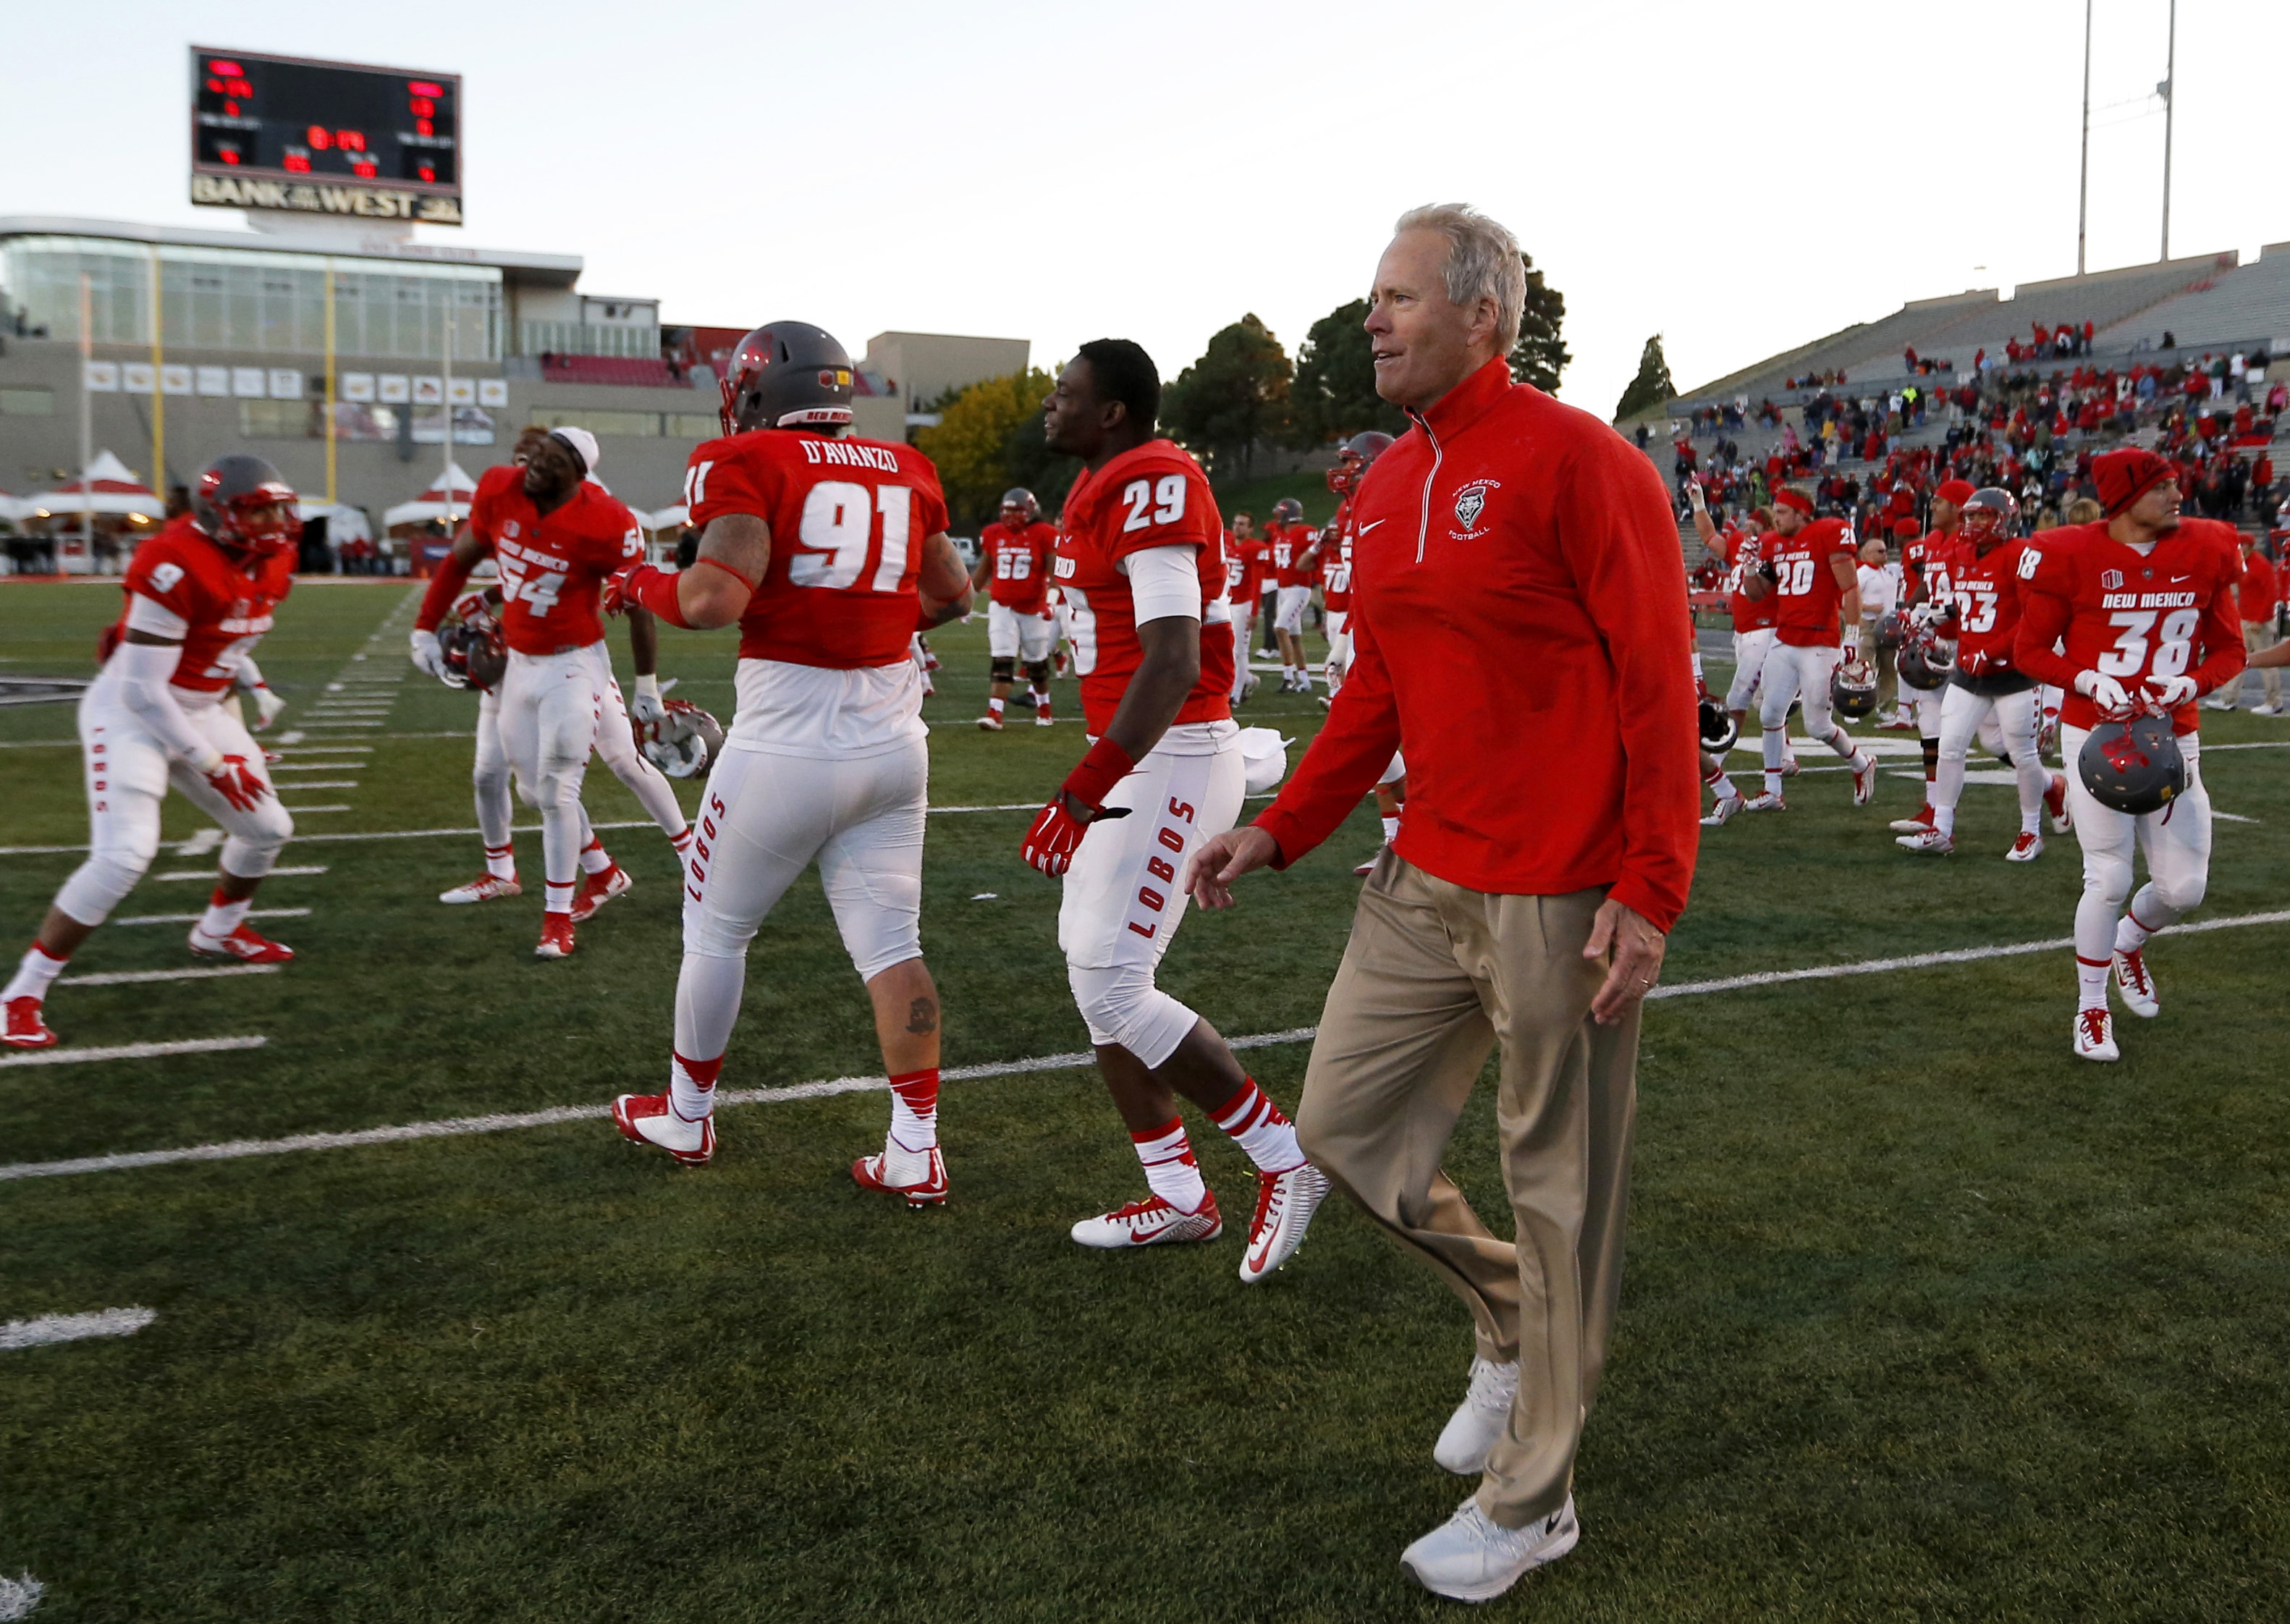 New Mexico head coach Bob Davie celebrates along his players at the end of an NCAA college football game against Utah State in Albuquerque, N.M., Saturday, Nov. 7, 2015. New Mexico won 14-13. (AP Photo/Andres Leighton)